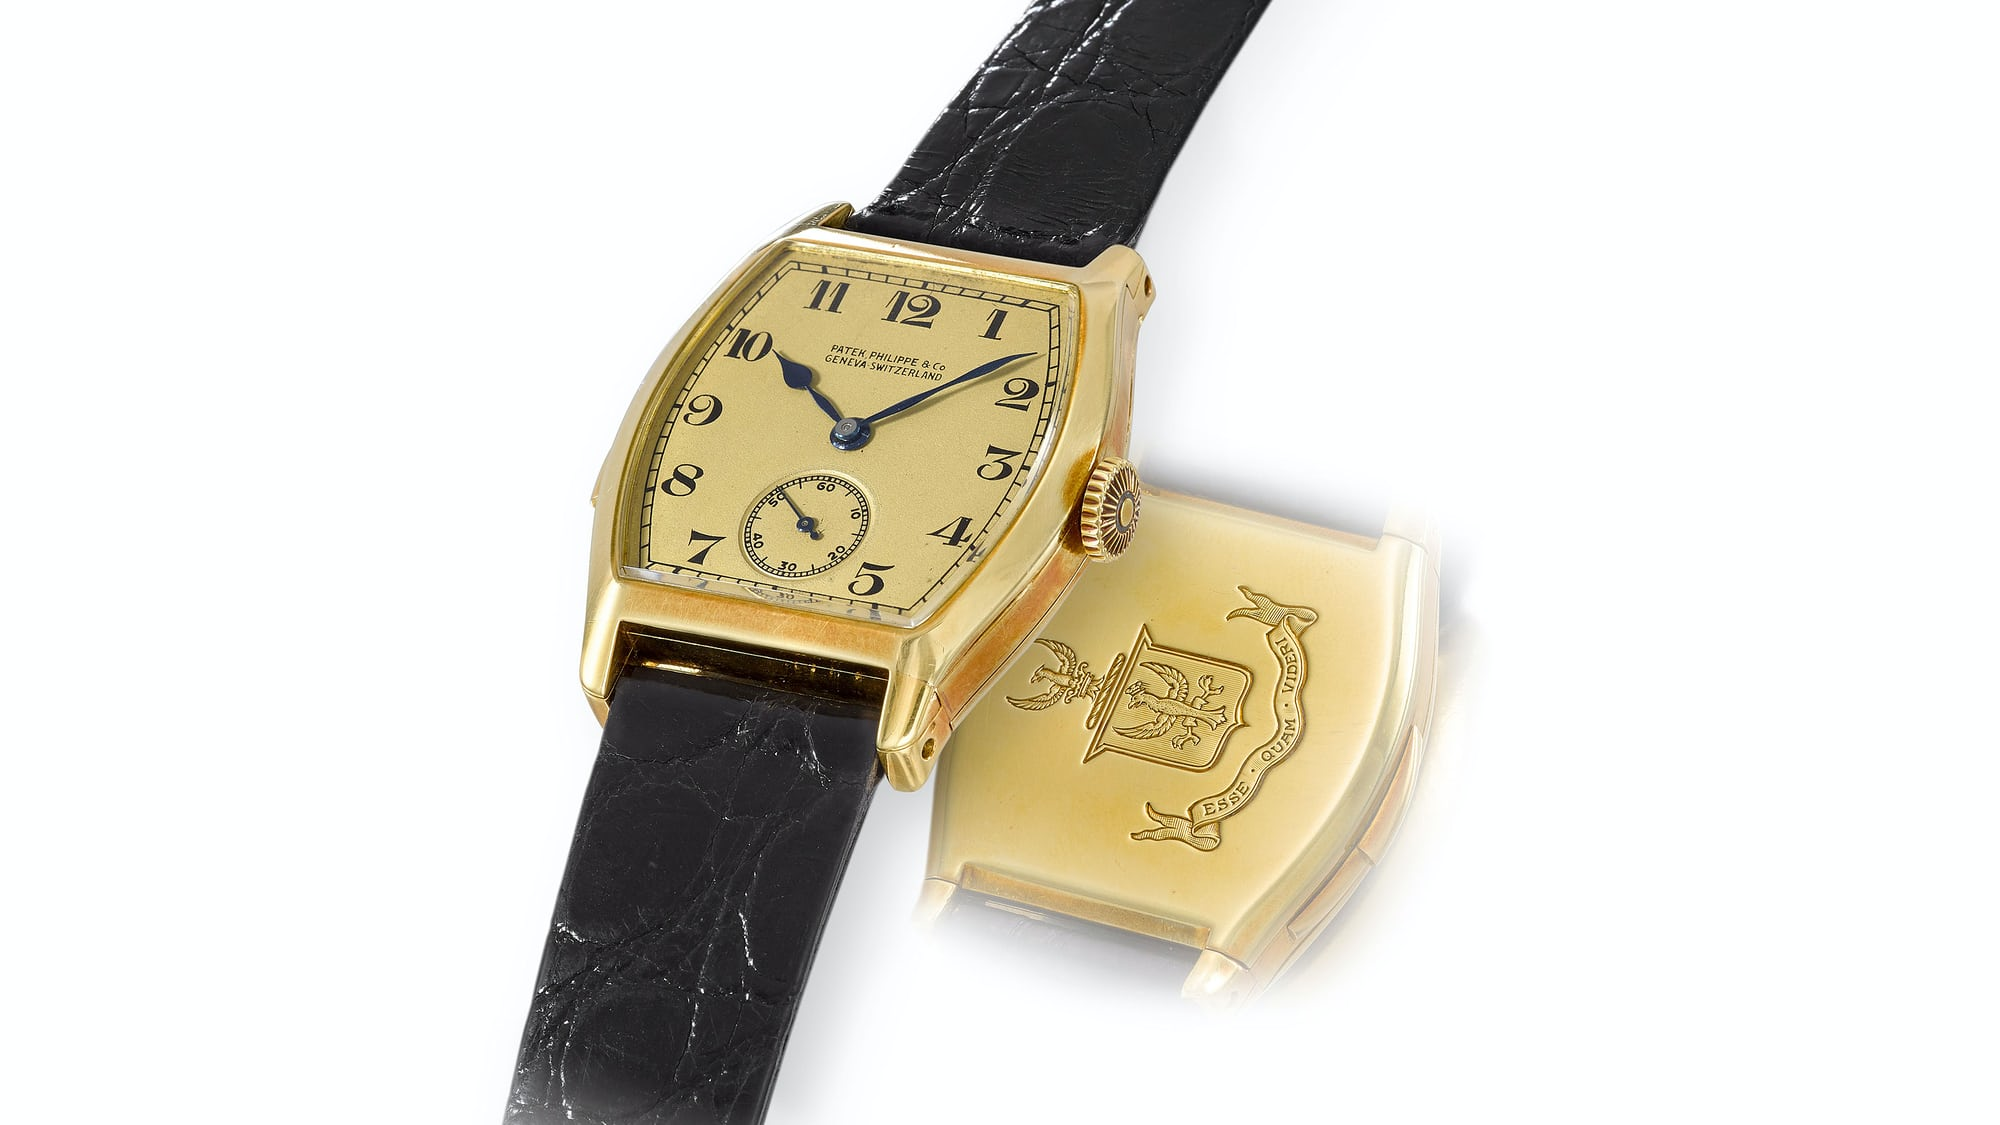 Breaking News: The Henry Graves Jr. Patek Philippe Minute Repeater Is Up For Sale Again At Christie's Geneva